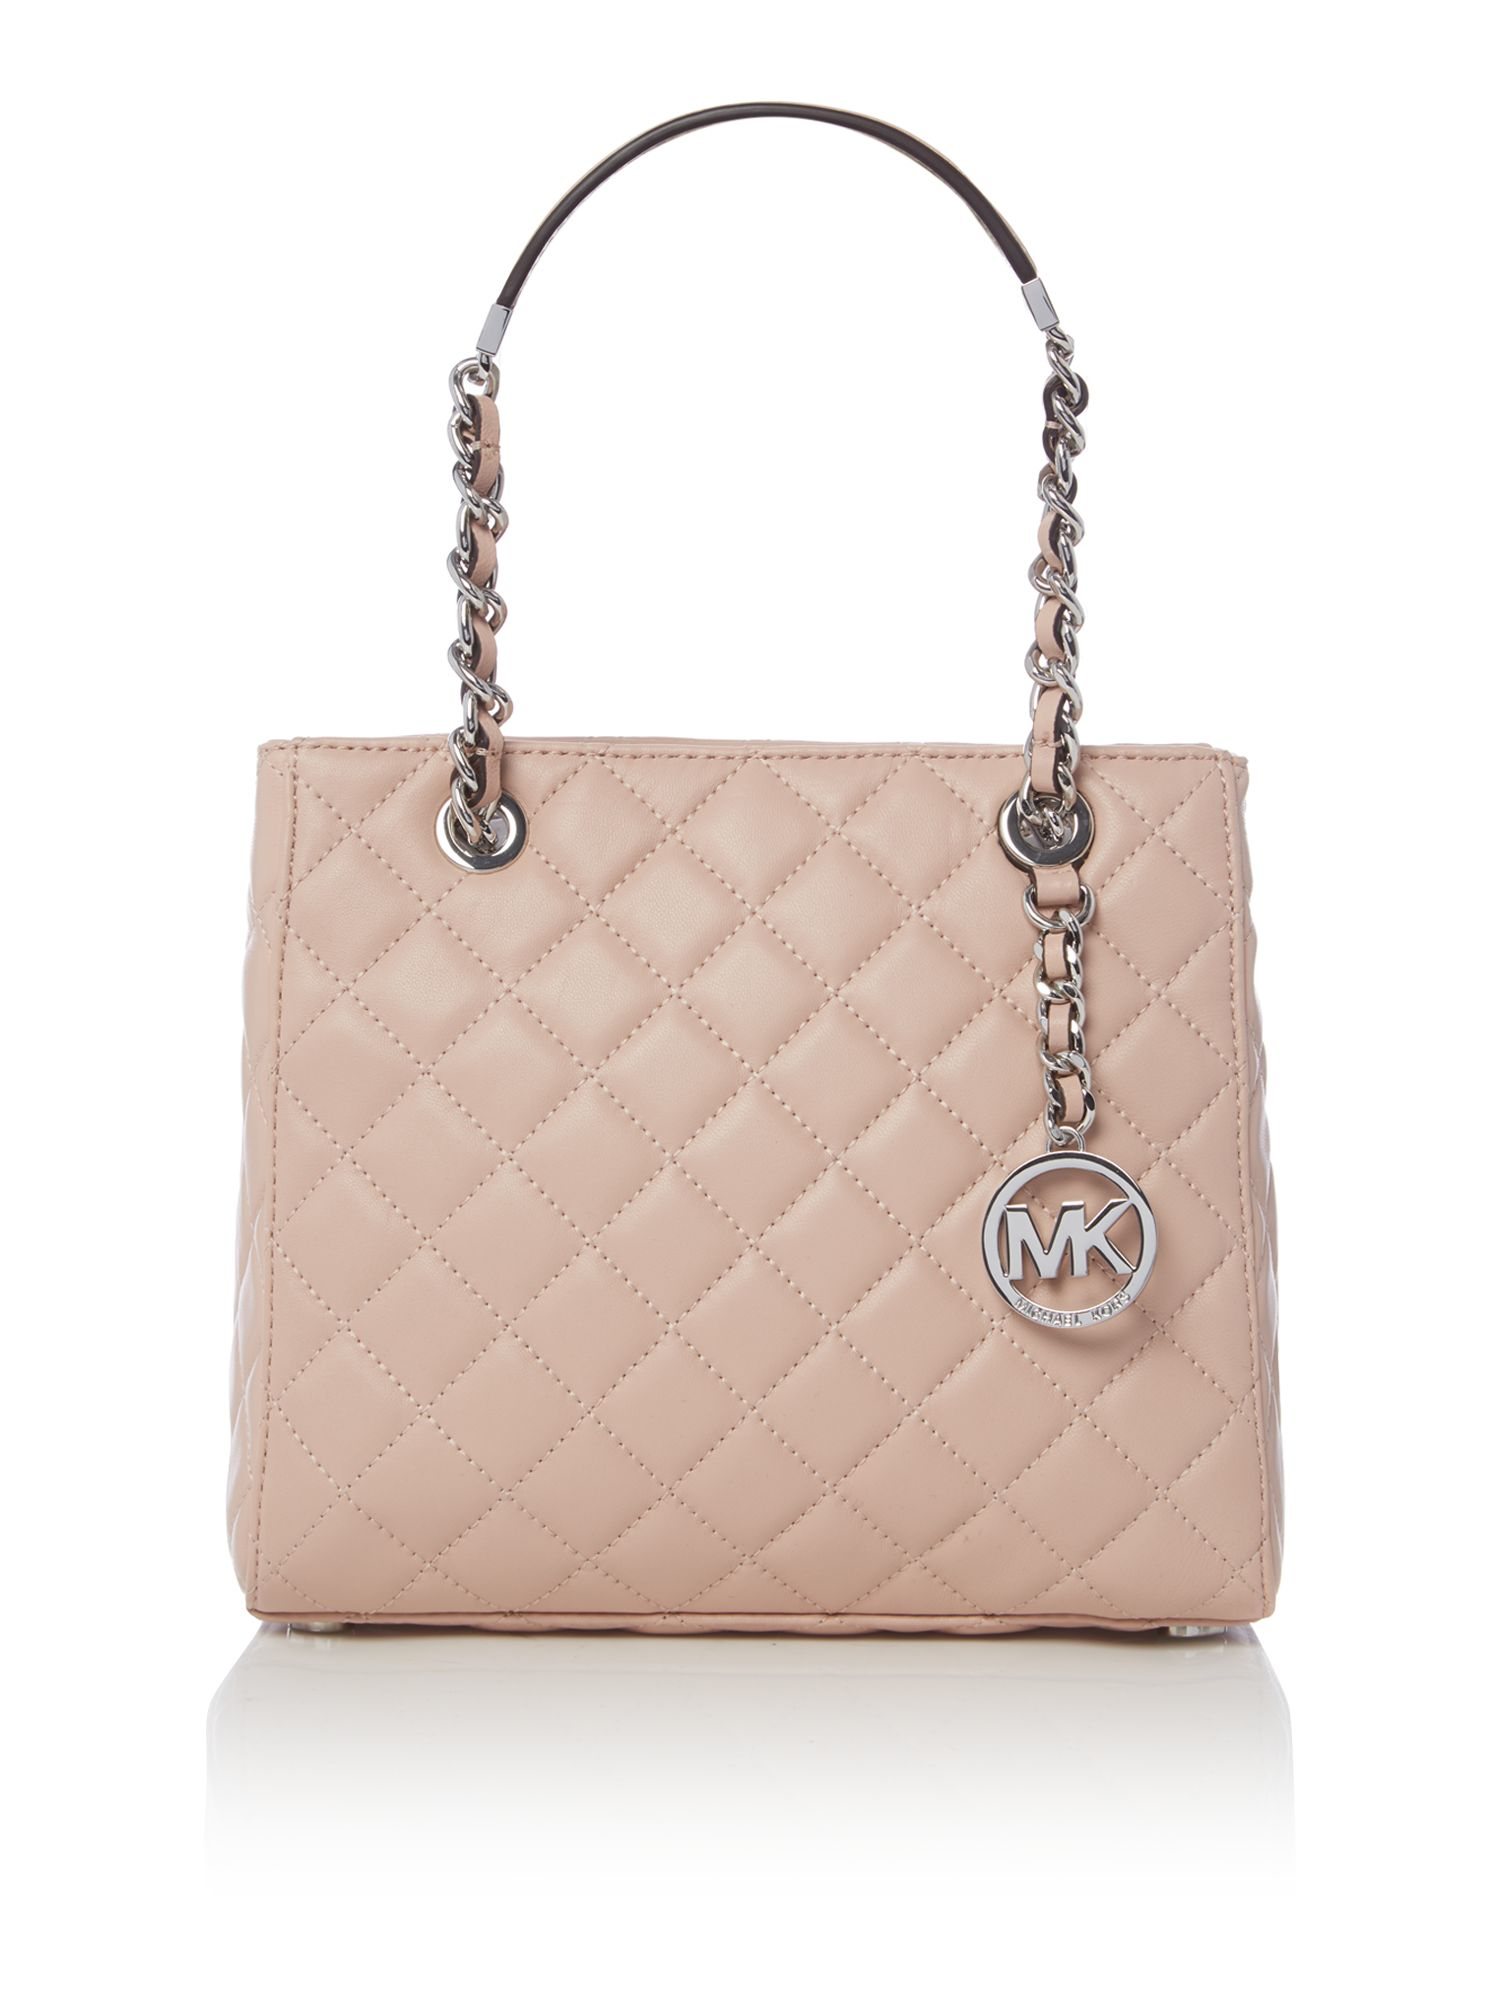 michael kors susannah pink quilted tote bag in pink lyst. Black Bedroom Furniture Sets. Home Design Ideas